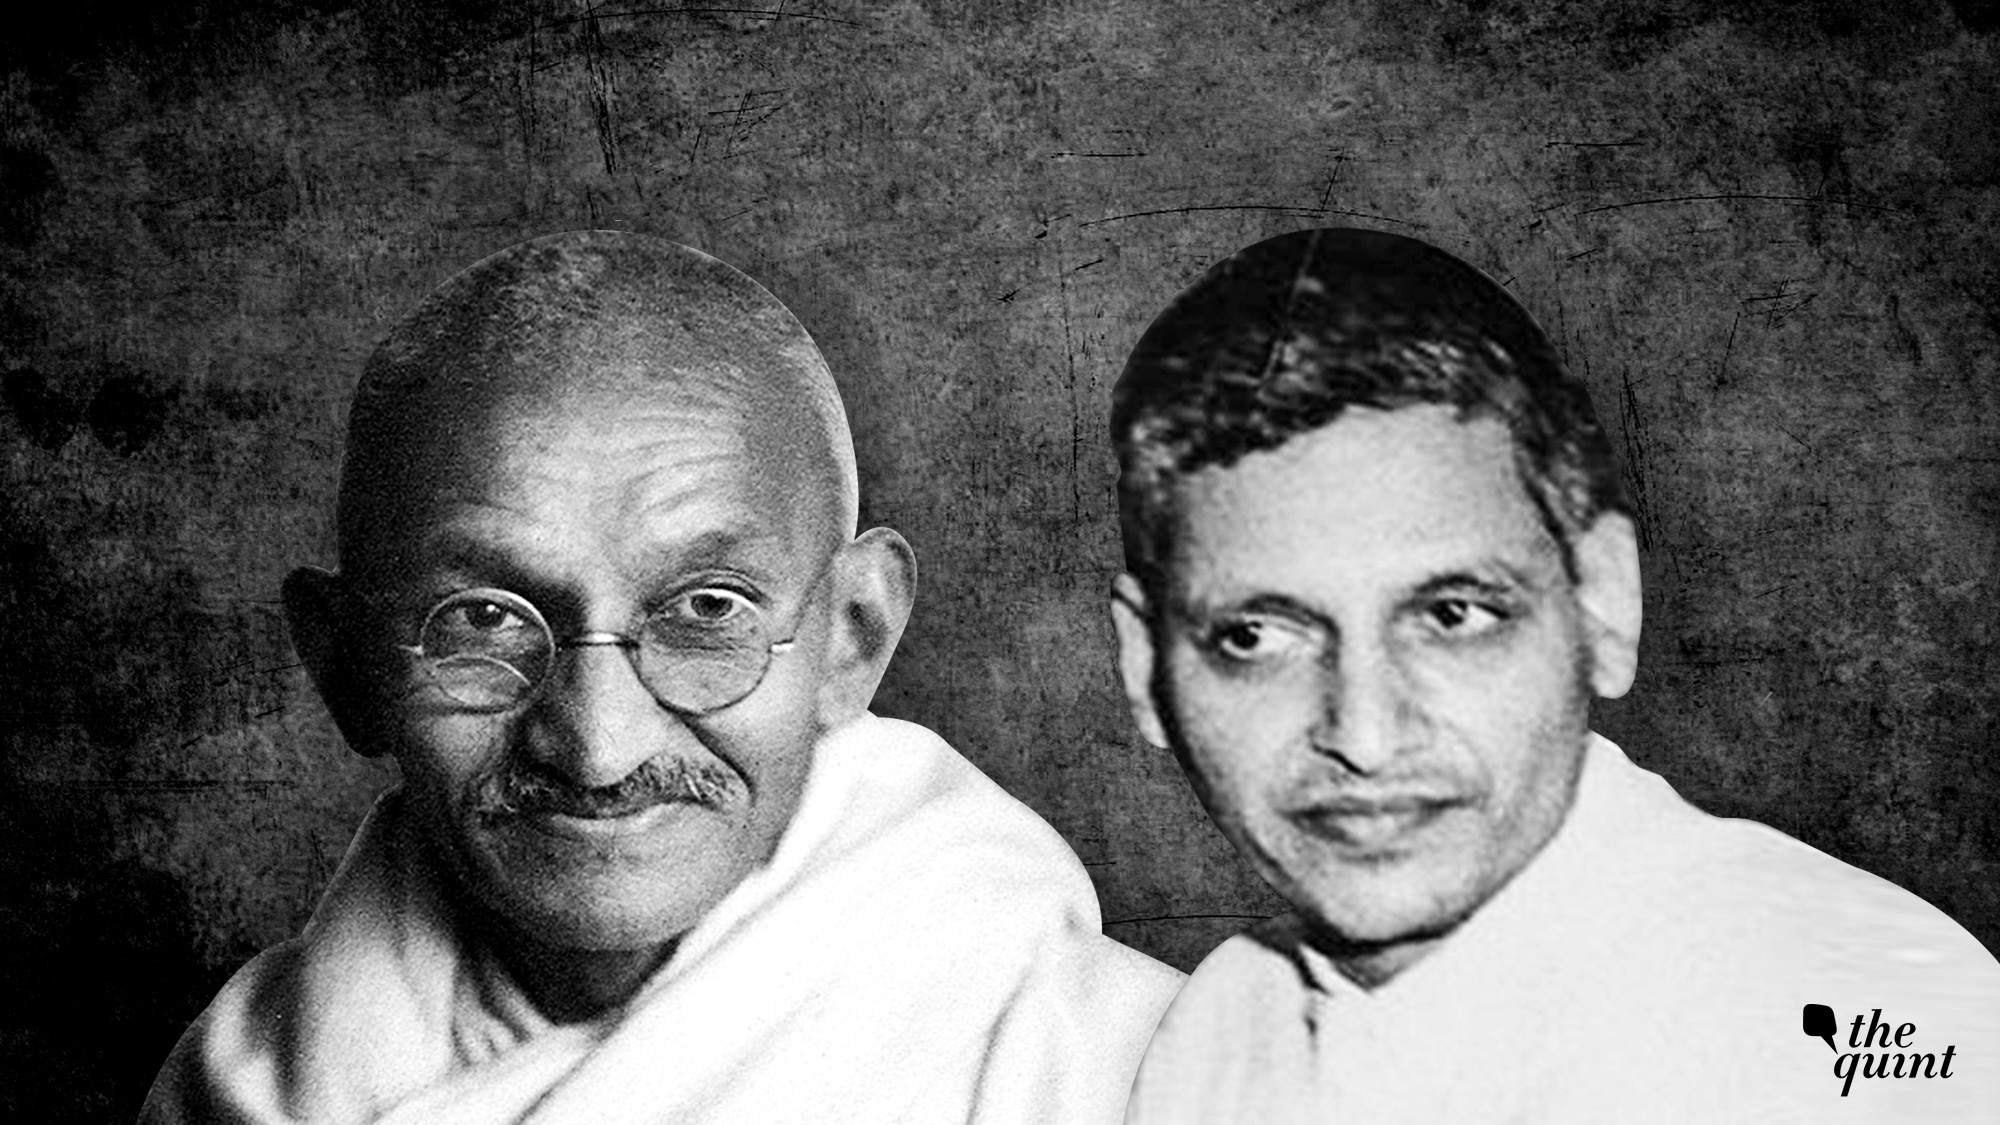 Mahatma Gandhi 70th Death Anniversary Revising The Nathuram Godse Trial